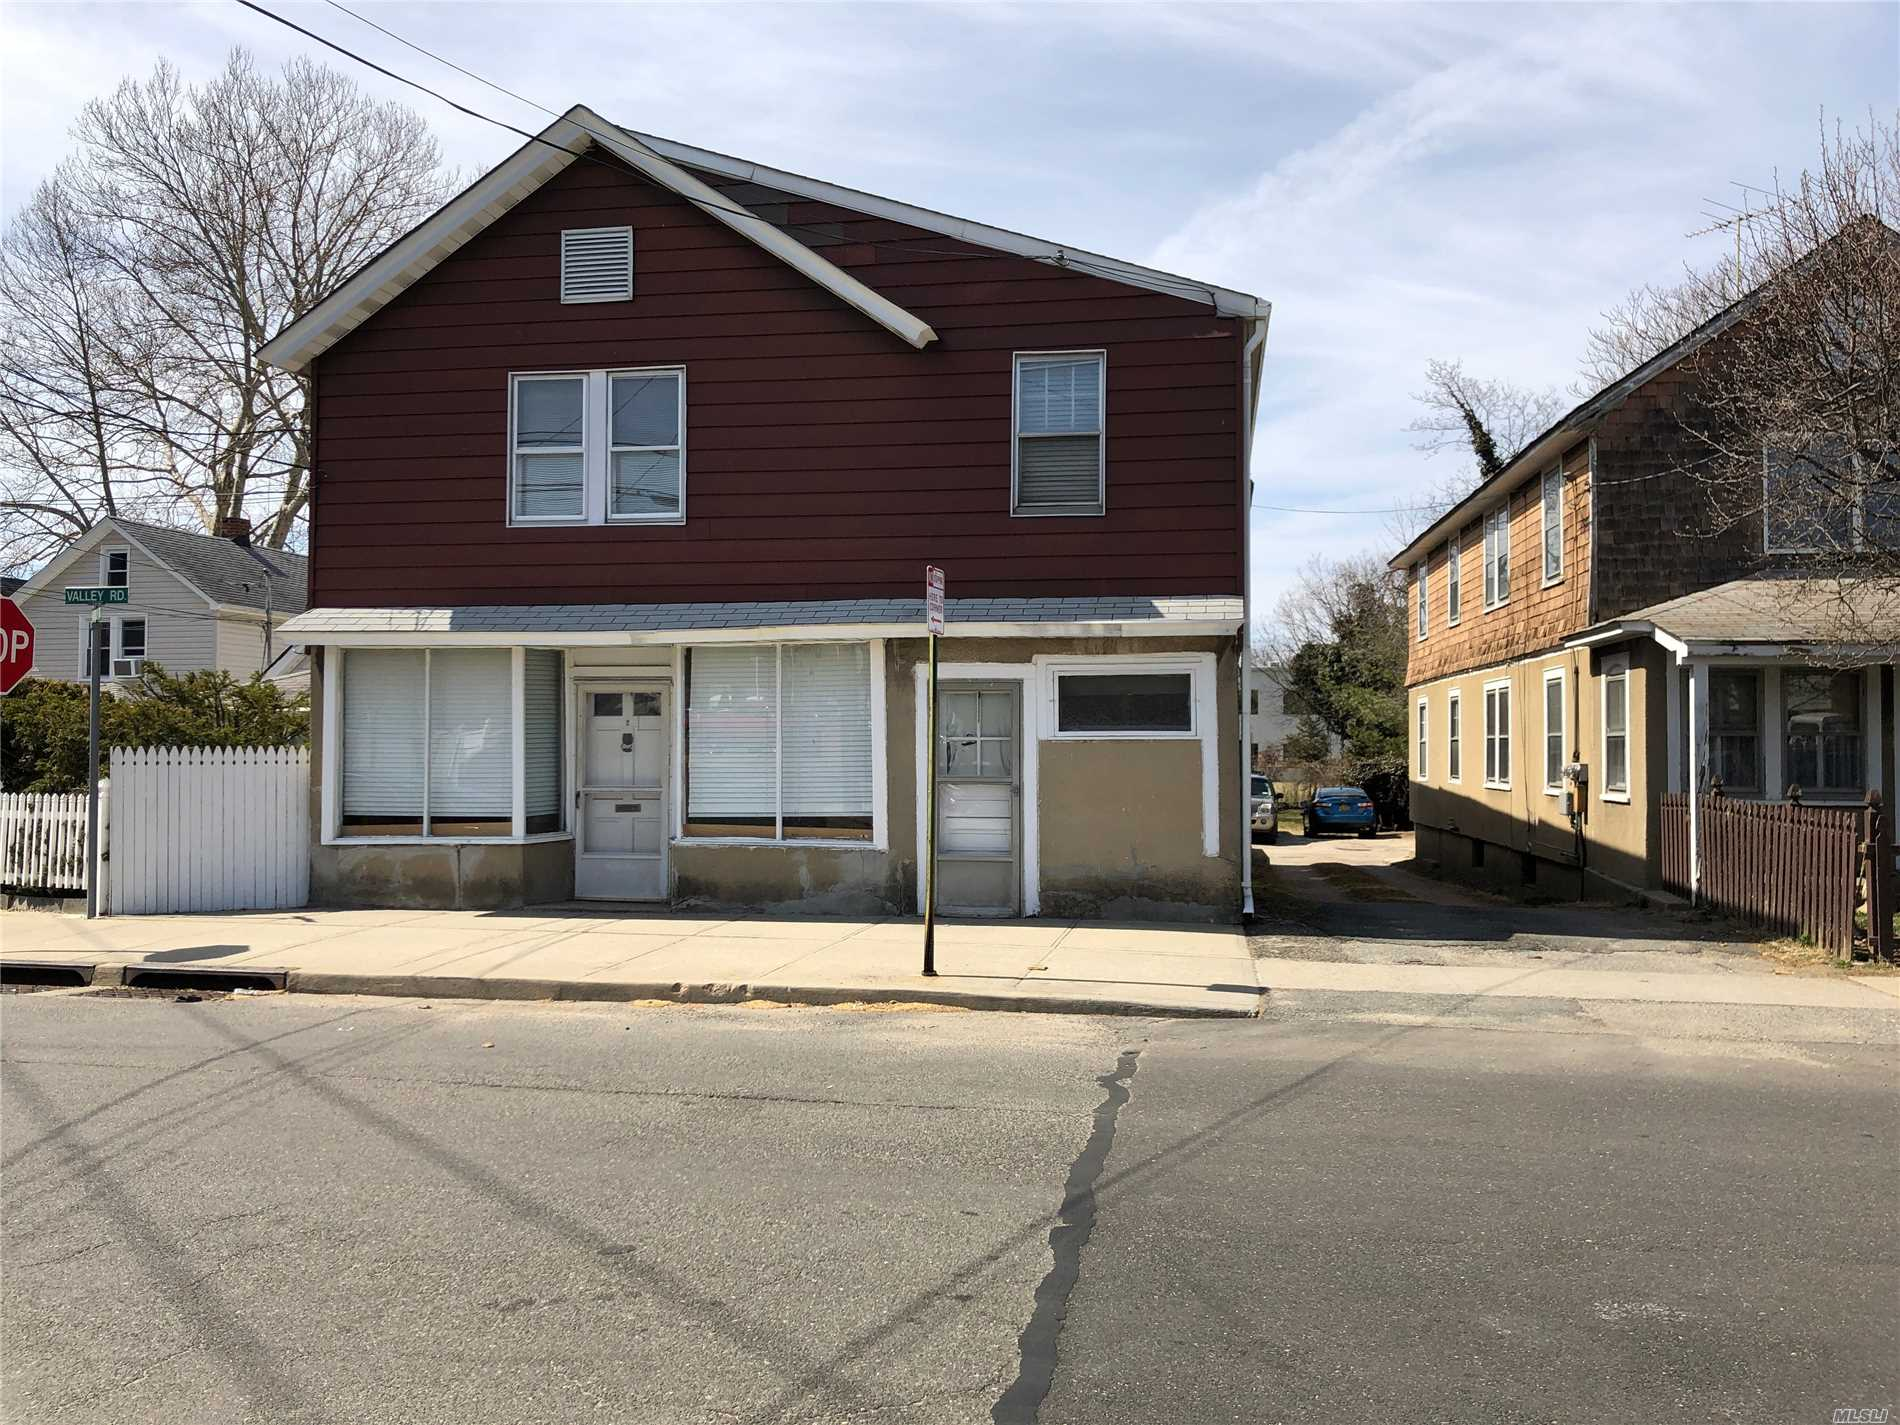 Property for sale at 2 Valley Rd, Port Washington,  New York 11050